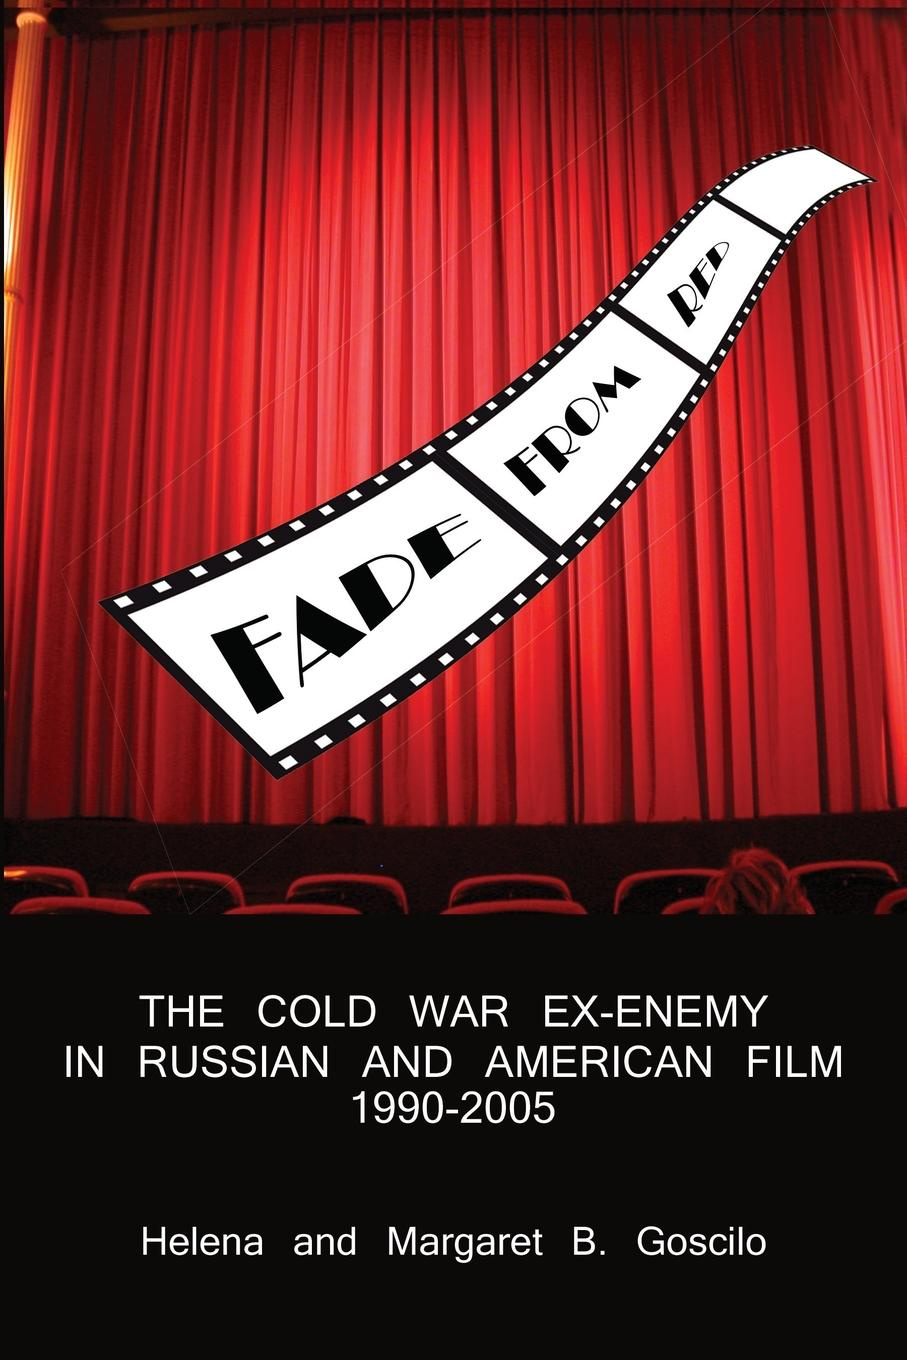 Helena Goscilo, Margaret B. Goscilo FADE FROM RED. The Cold-War Ex-Enemy in Russian and American Film, 1990-2005 the cold war a new oral history